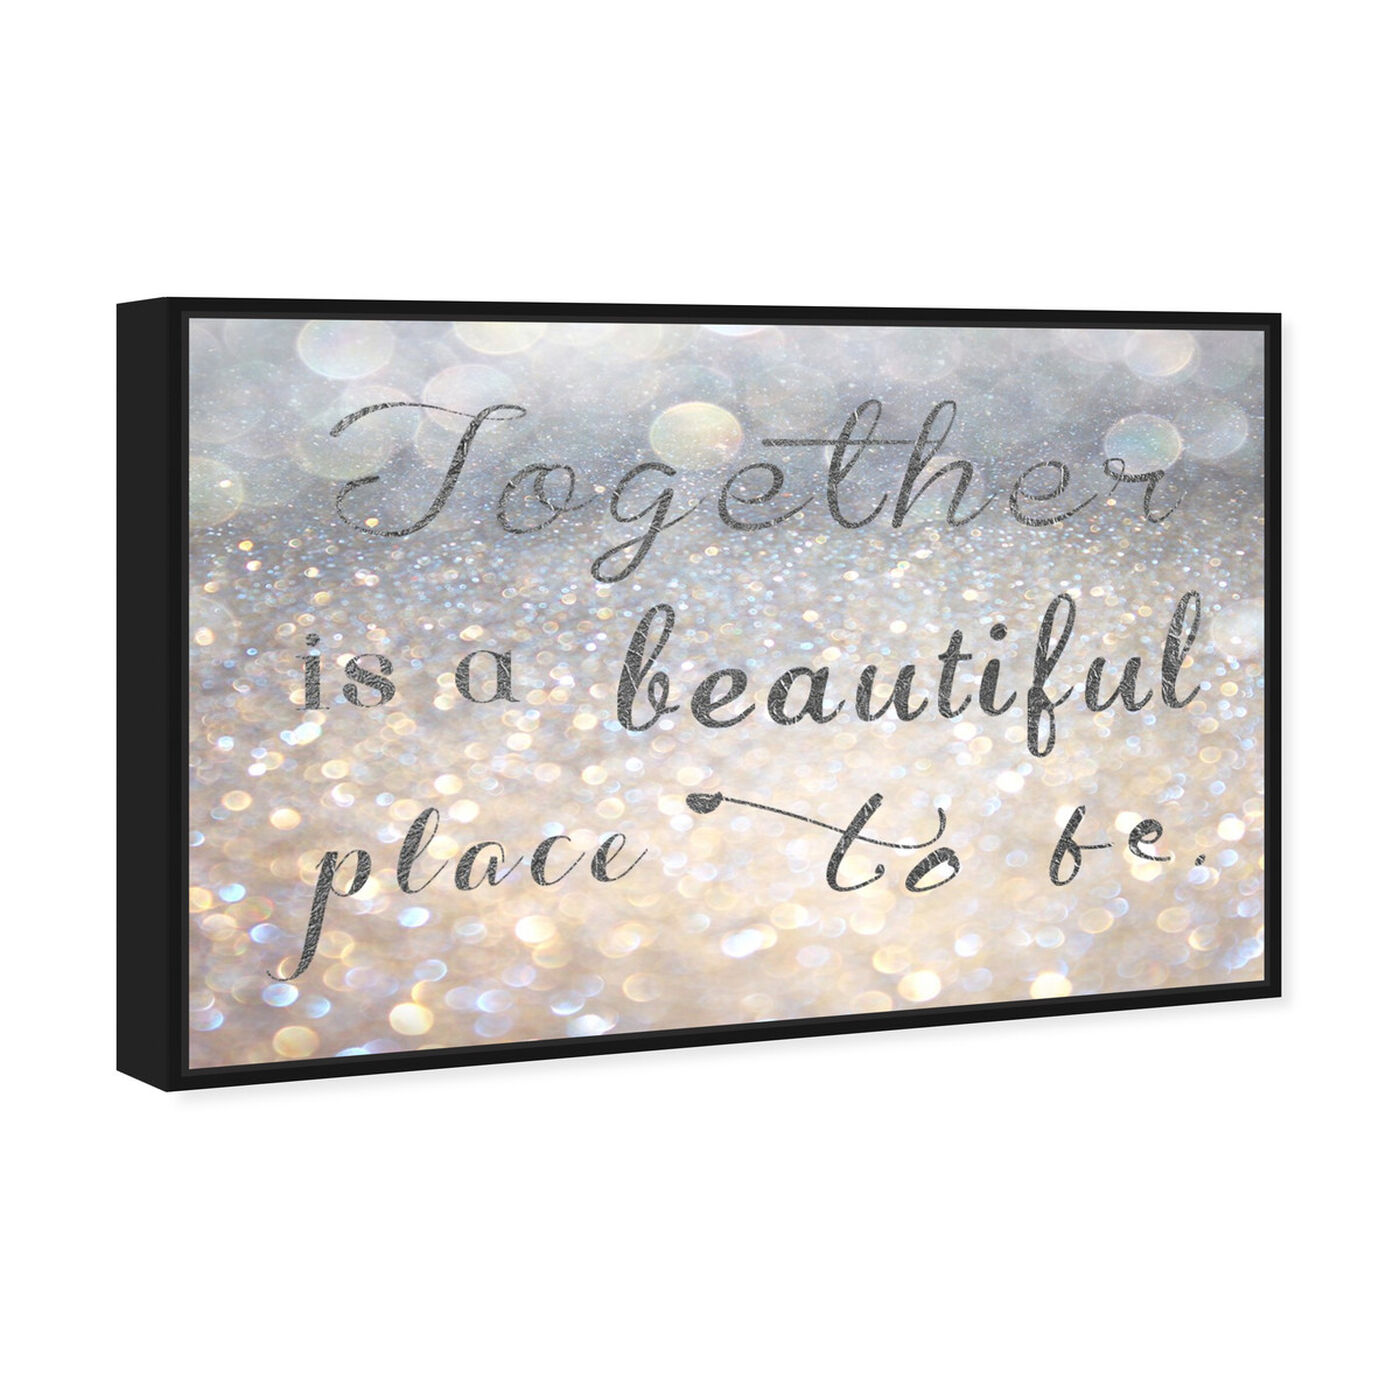 Angled view of Beautiful Place to Be featuring typography and quotes and family quotes and sayings art.